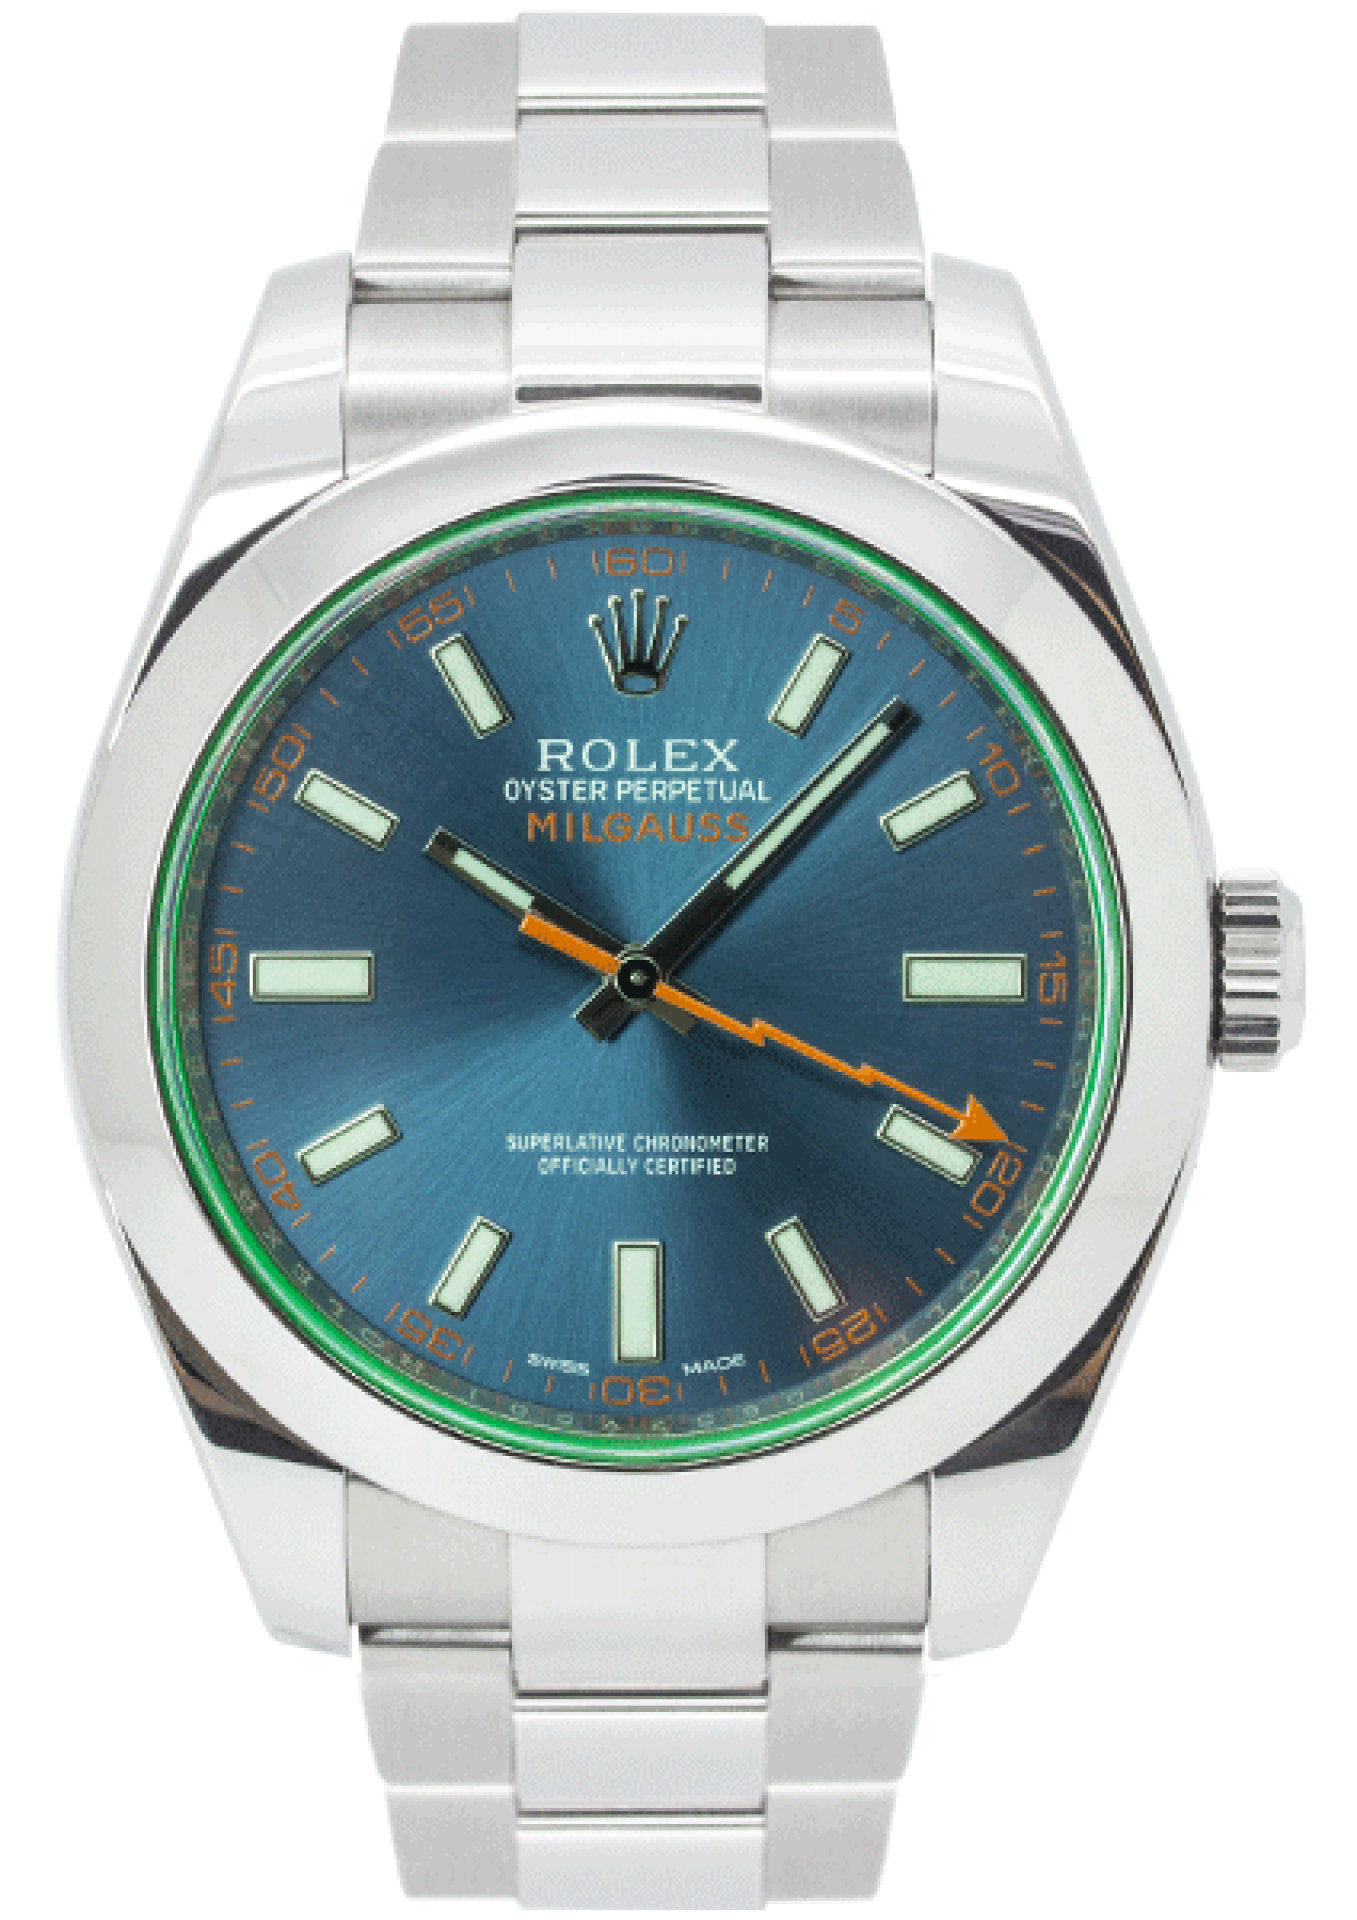 Rolex Oyster Perpetual Milgauss Z-Blue Dial 116400GV